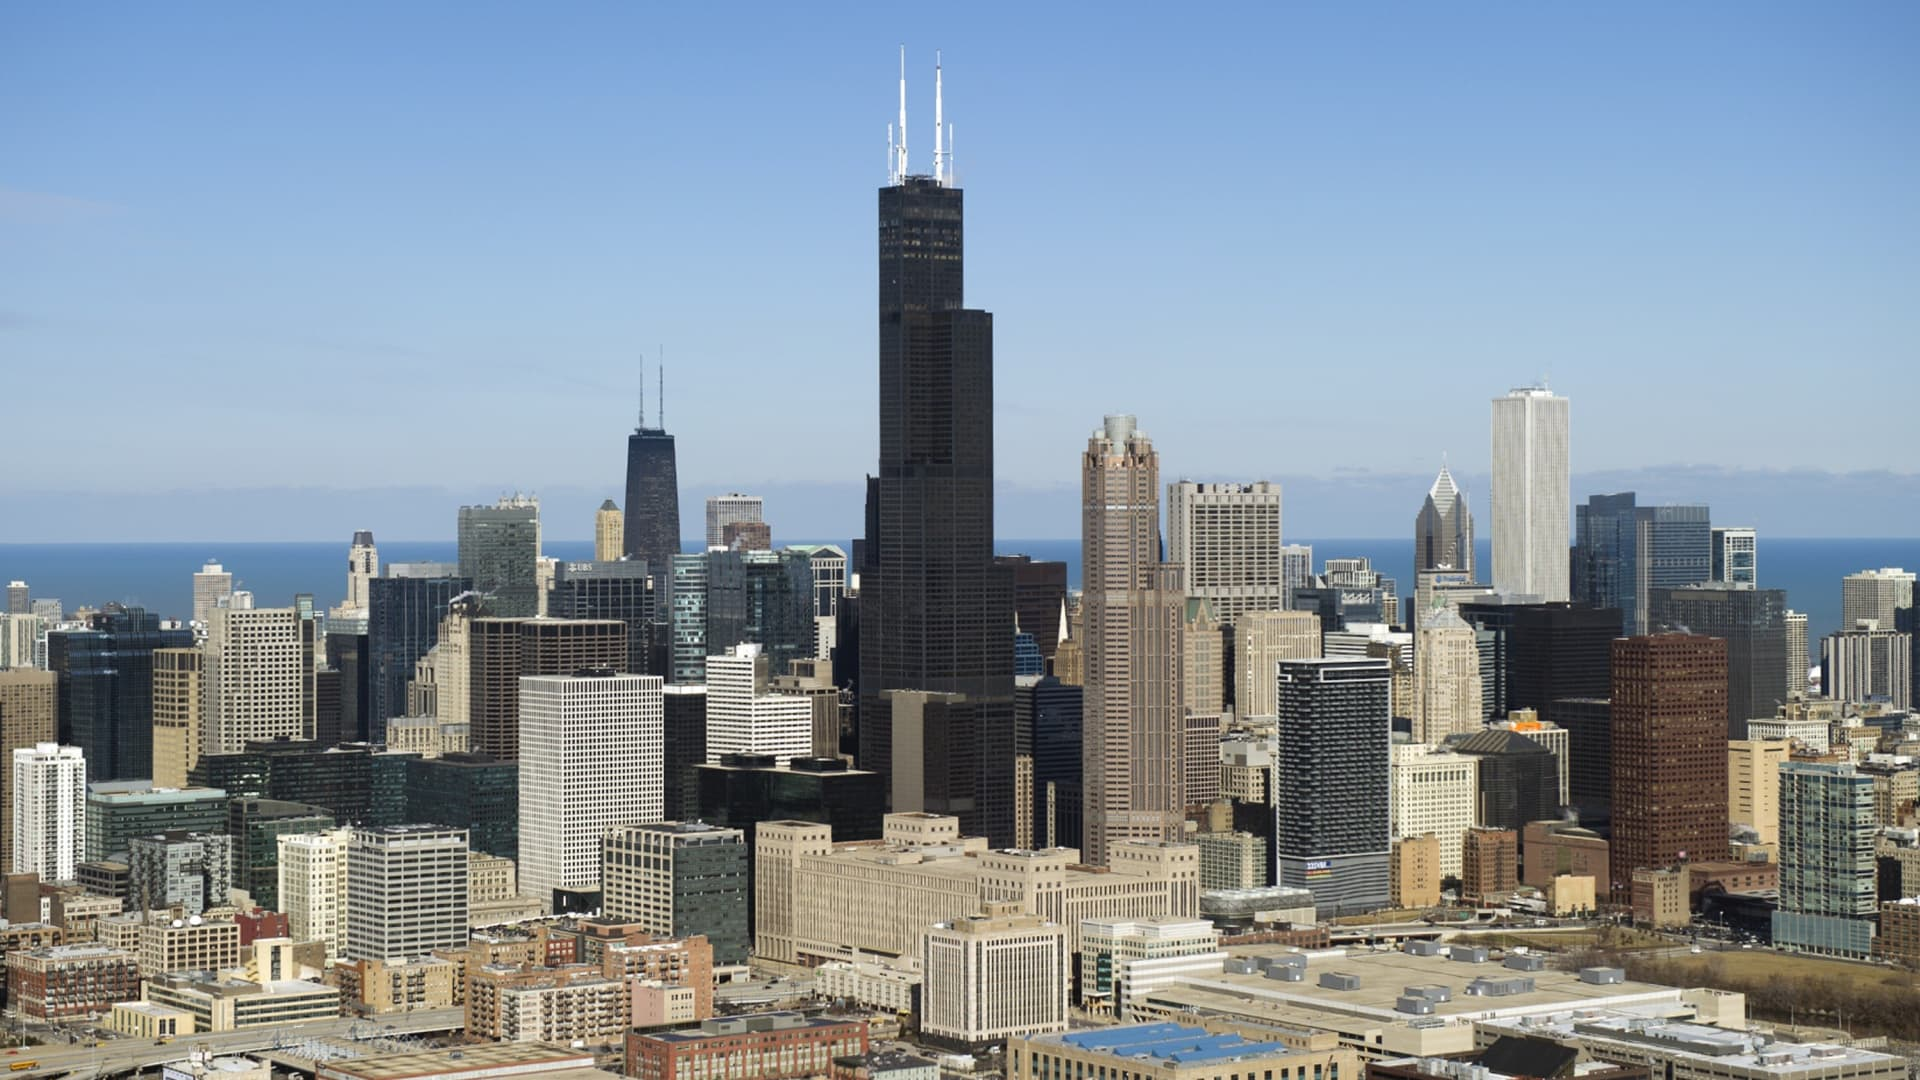 The Chicago, Illinois, downtown skyline including the Willis Tower, formerly known as the Sears Tower, is seen from the air, February 15, 2013.